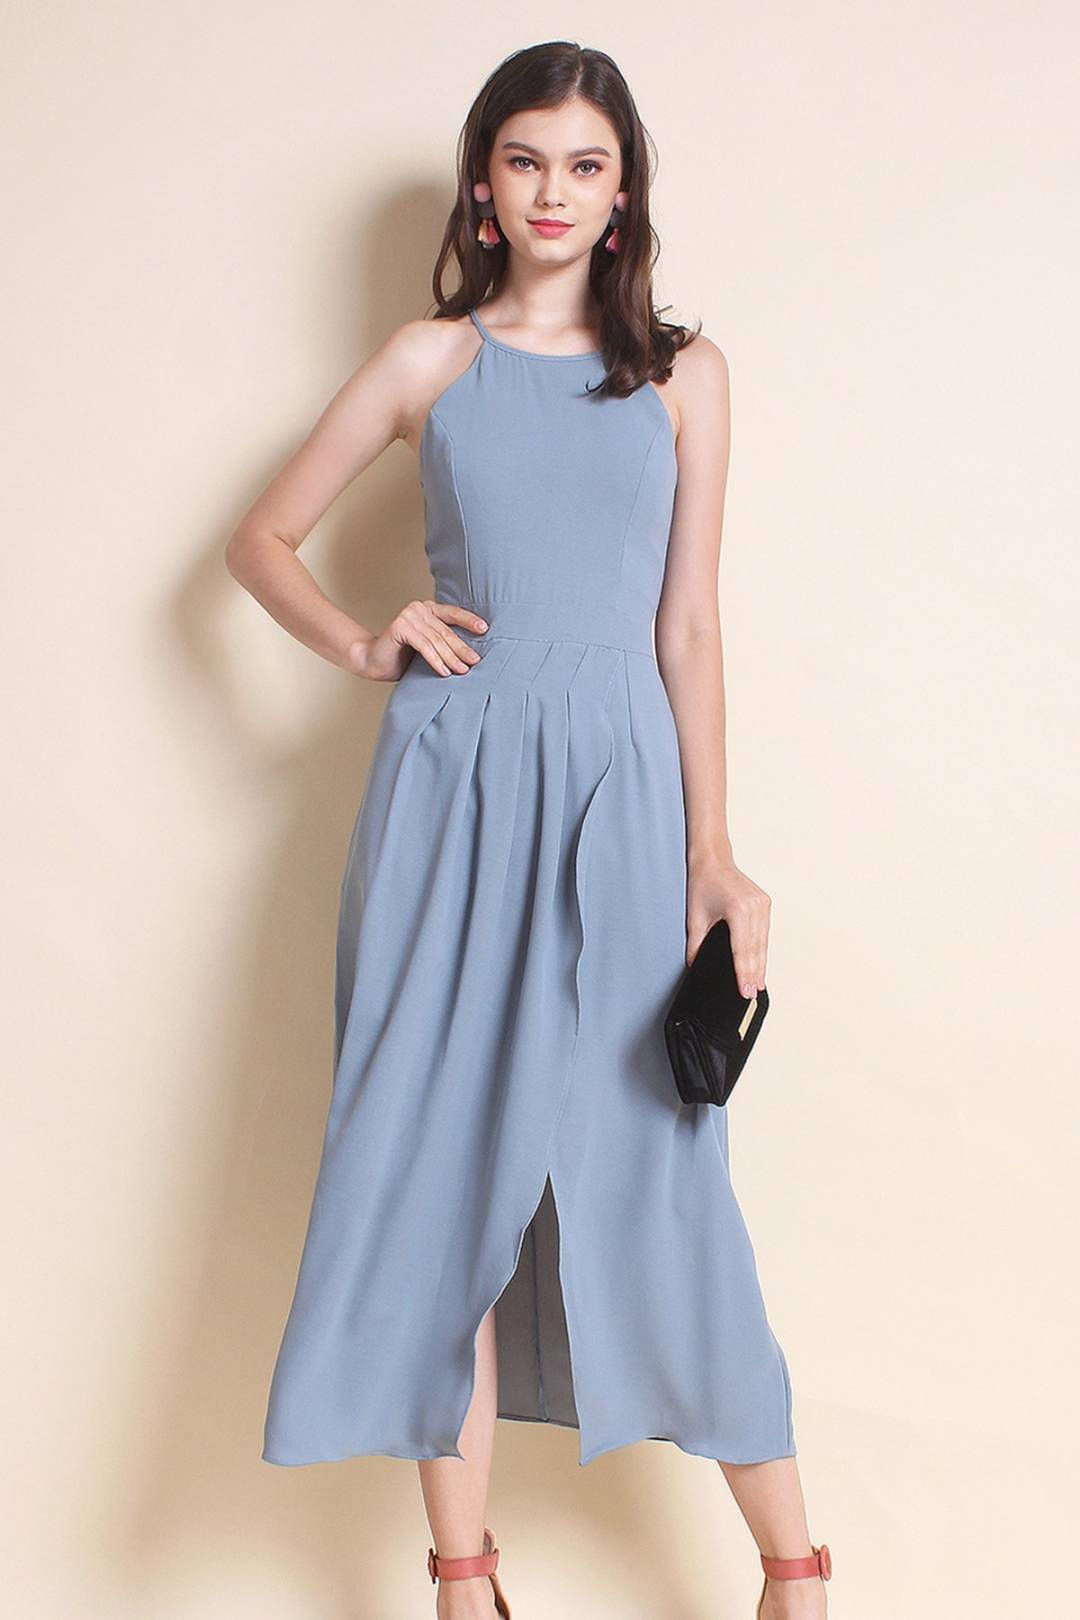 MADEBYNM TERRA PLEAT OVERLAPPING MAXI DRESS IN SEASALT [XS/S/M/L]